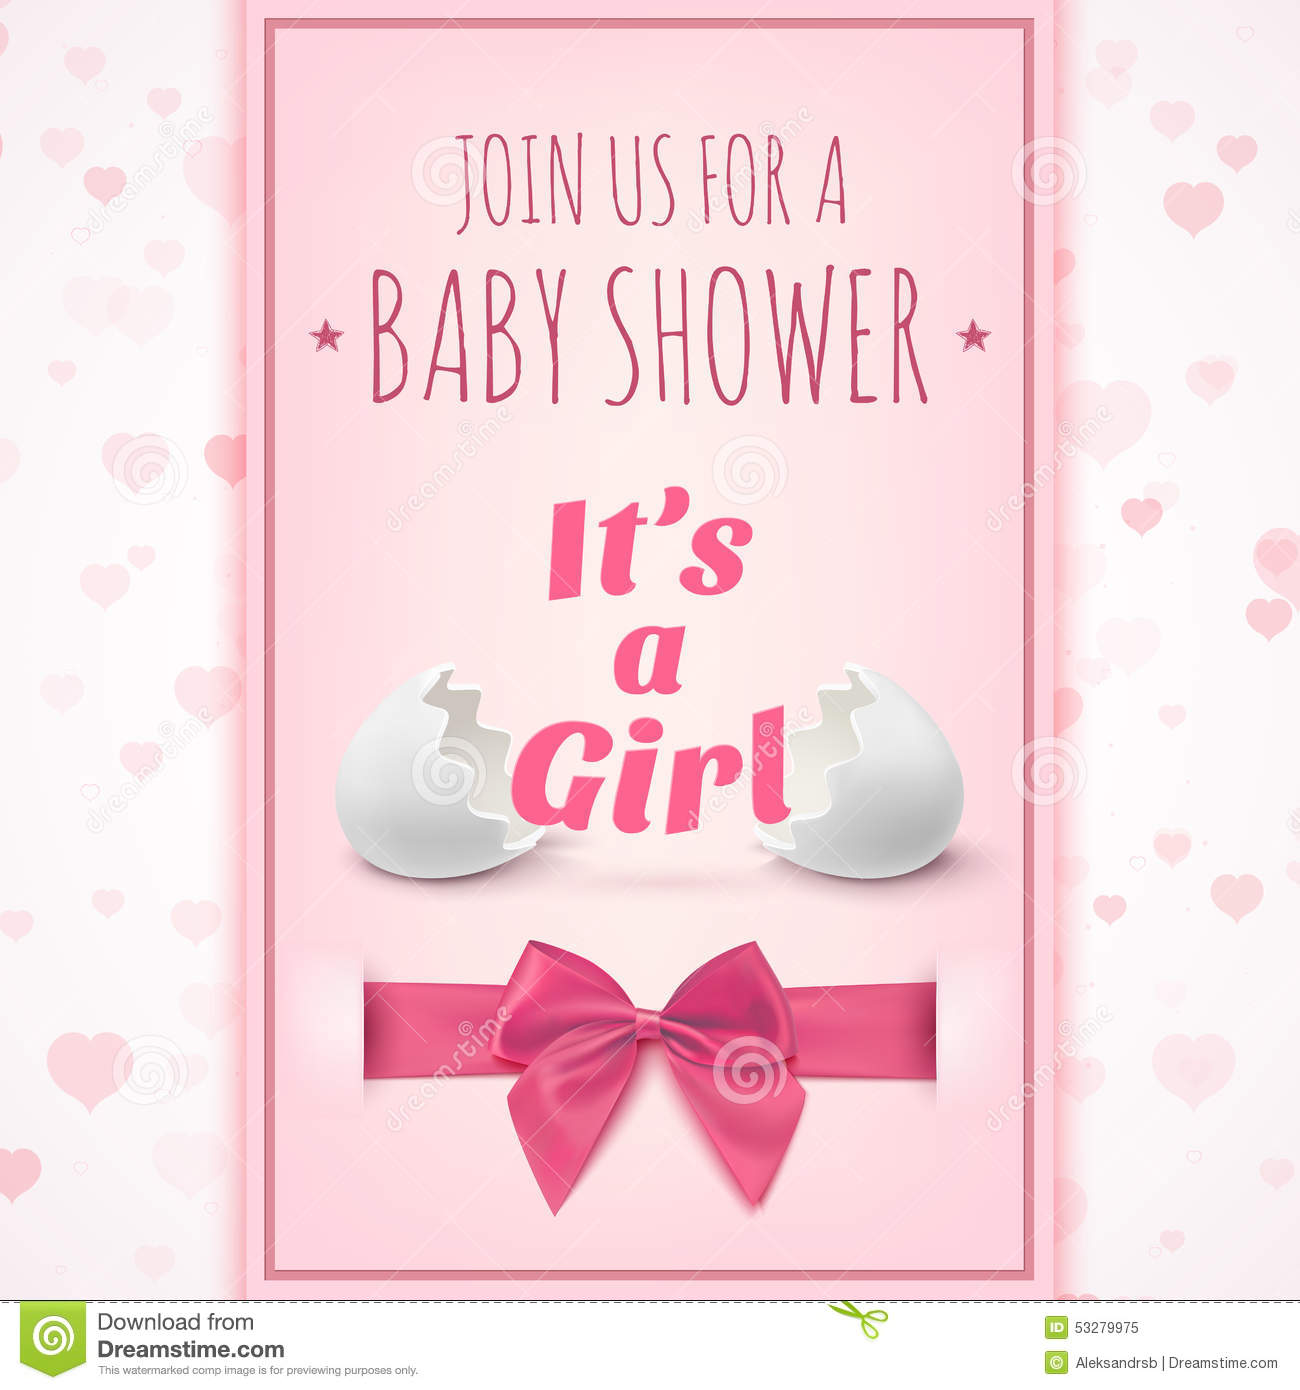 its a girl template for baby shower celebration or baby announcement